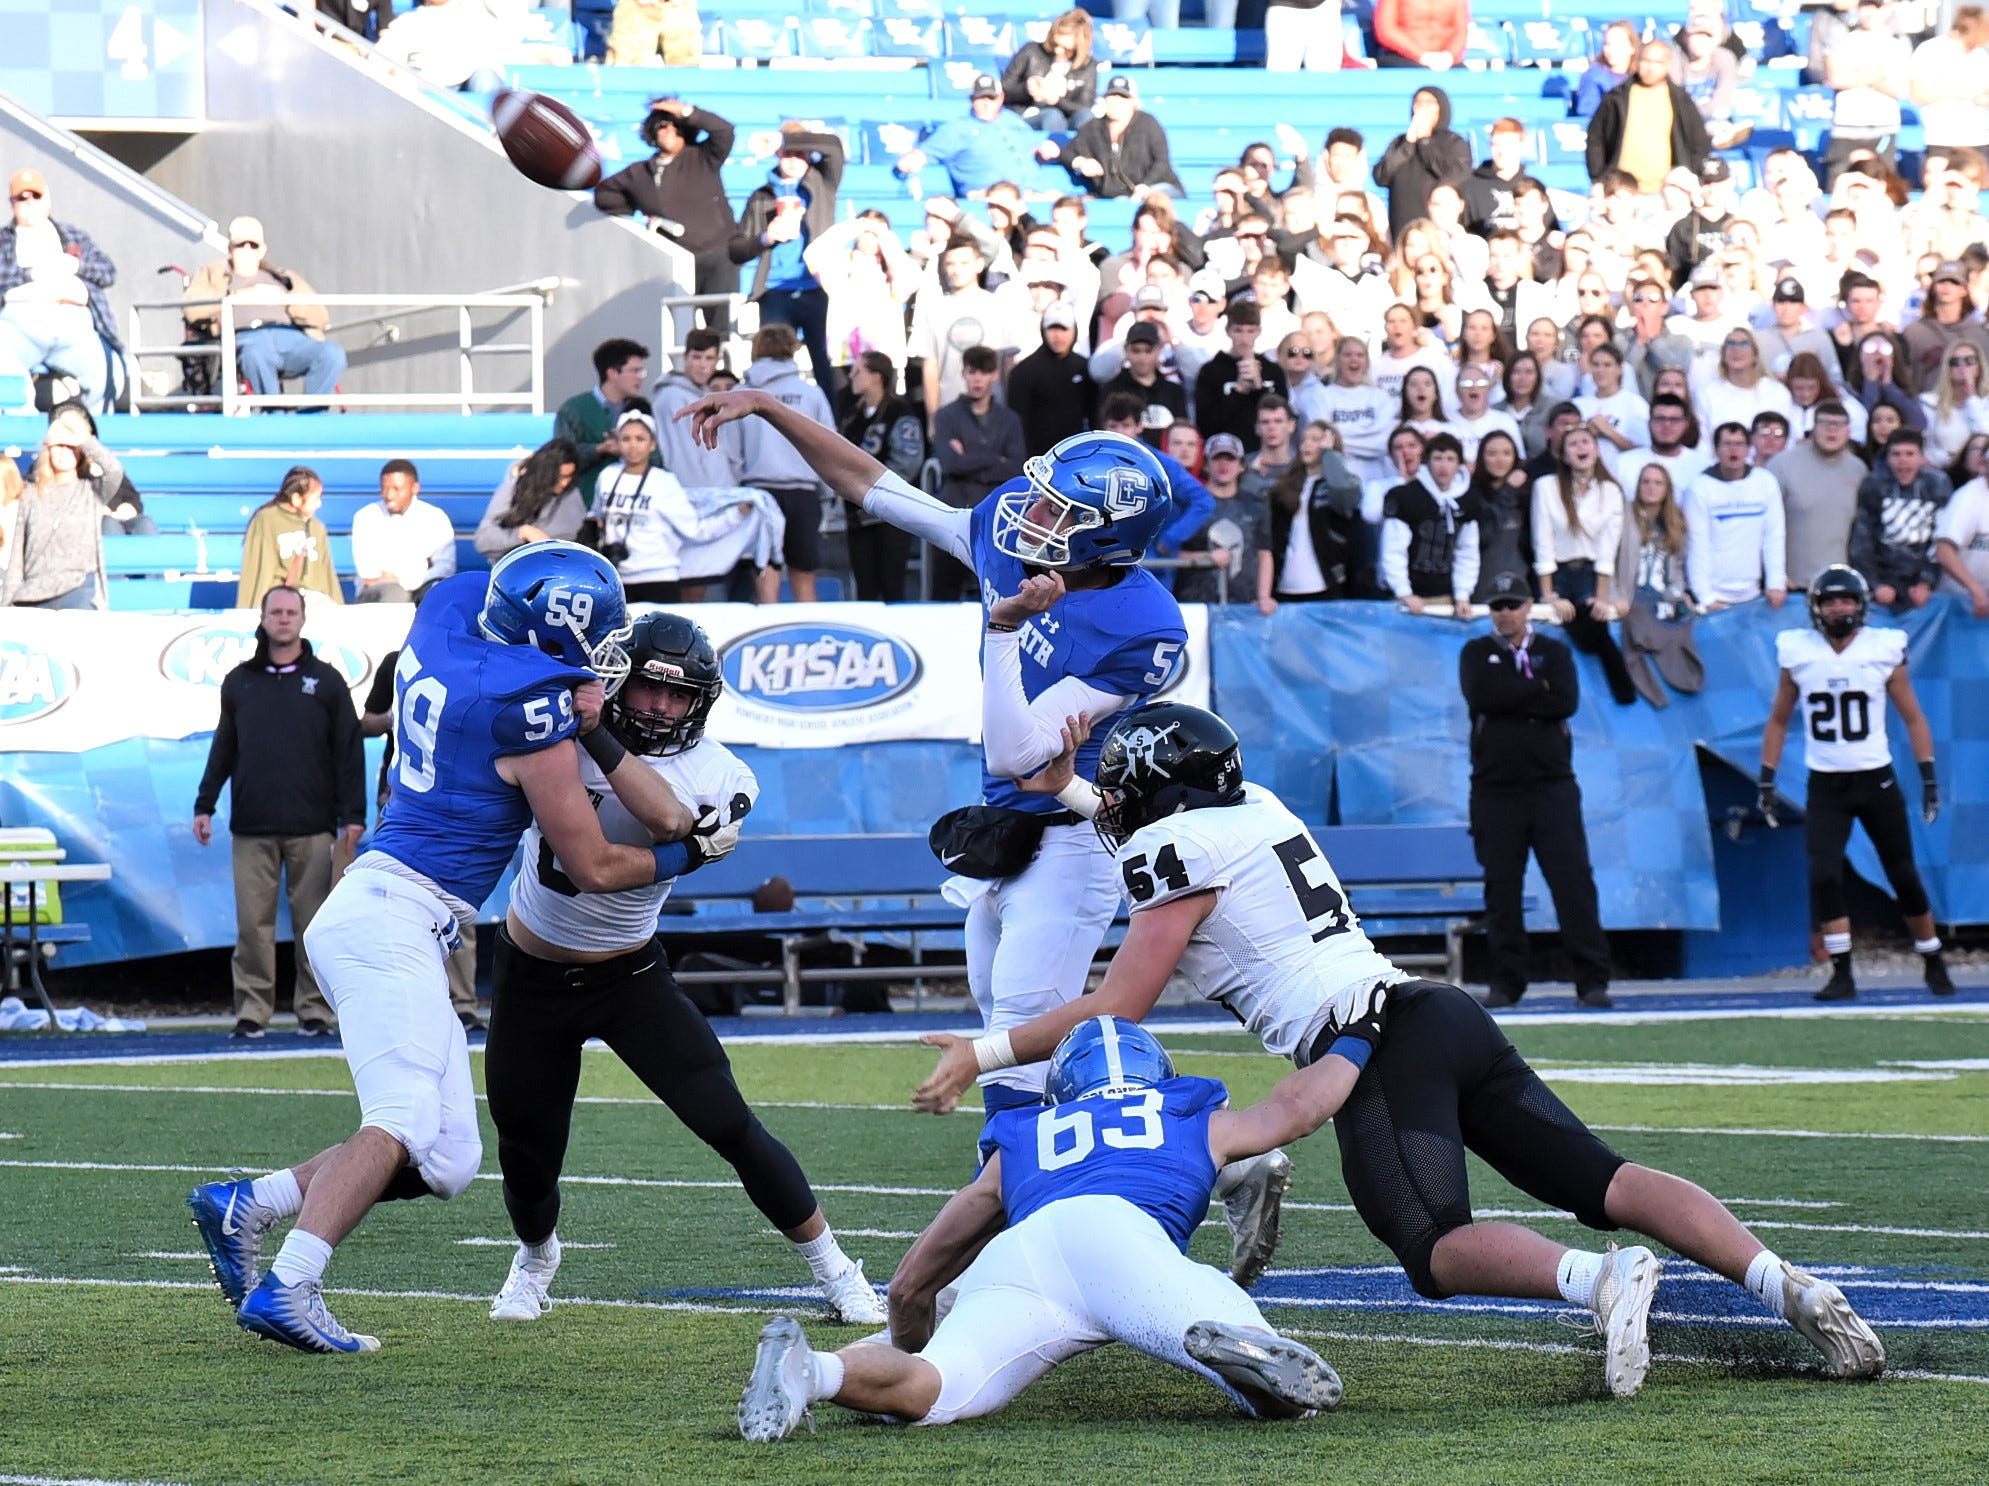 Caleb Jacob (5) fires off a pass to the endzone for Covington Catholic in the 2018 KHSAA 5A State Football Championship, December 2, 2018.